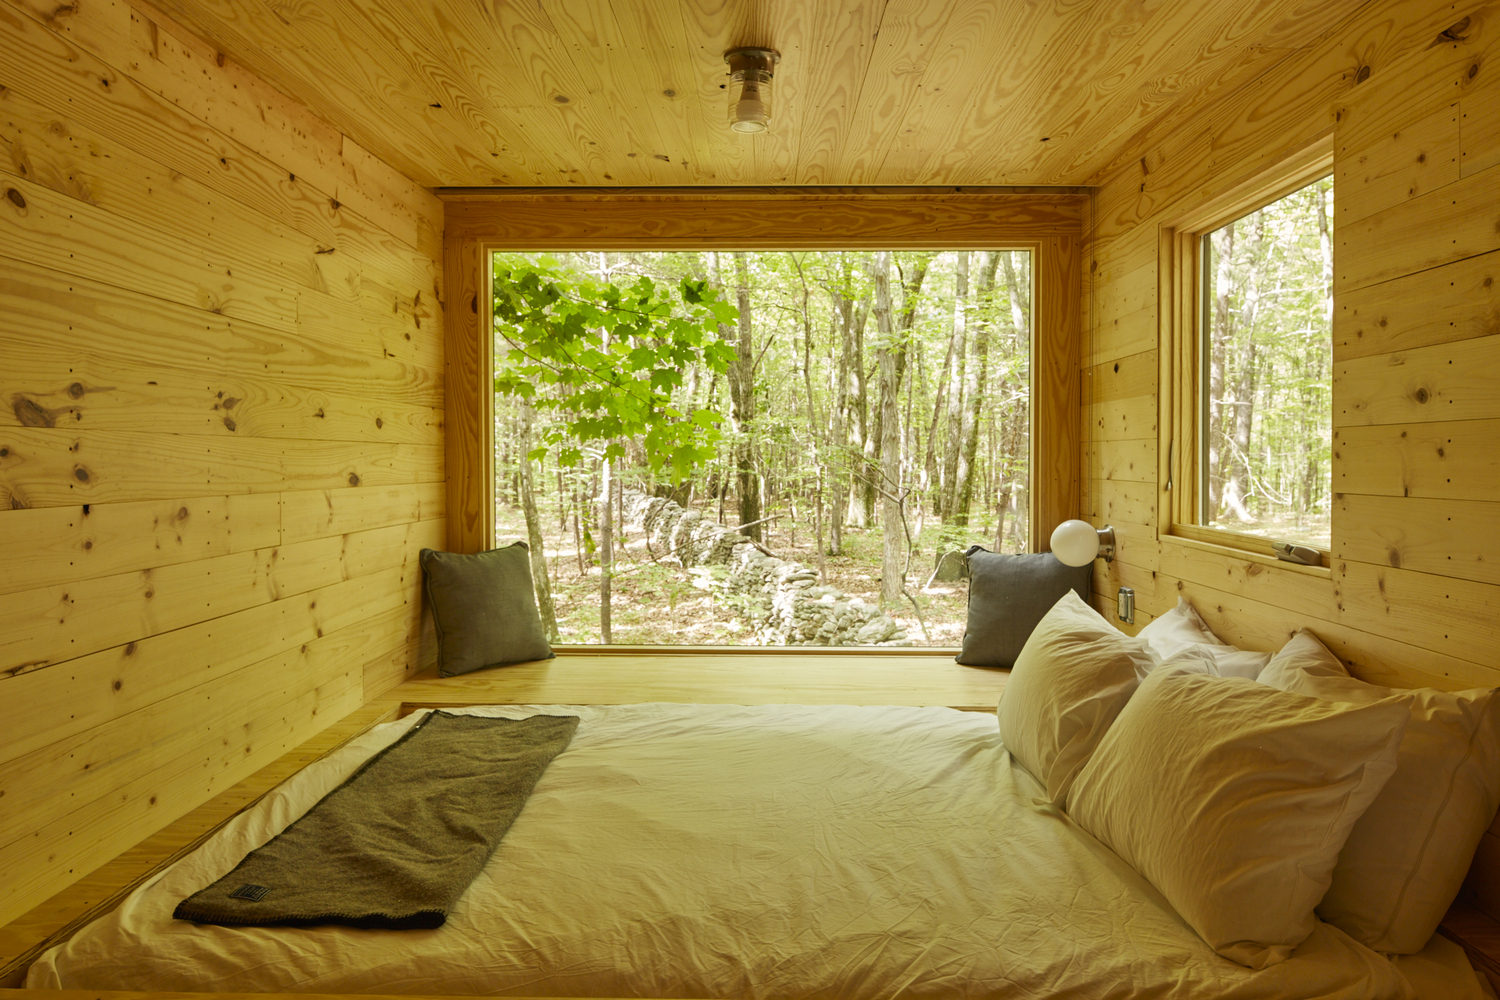 Beau A Tiny Luxury: What Are U201cTiny Housesu201d Really Saying About Architecture?,